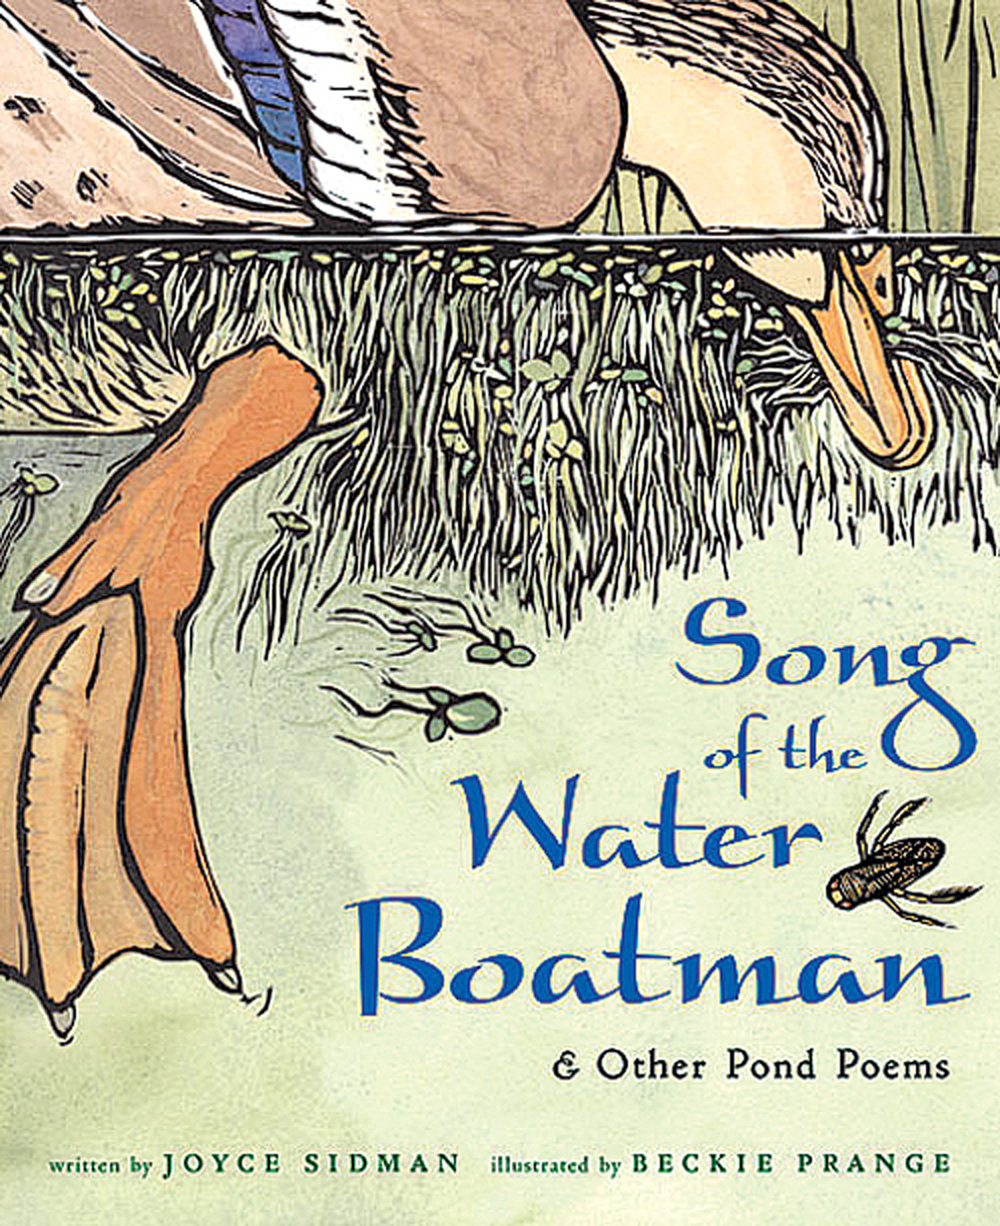 Song of the Water Boatman